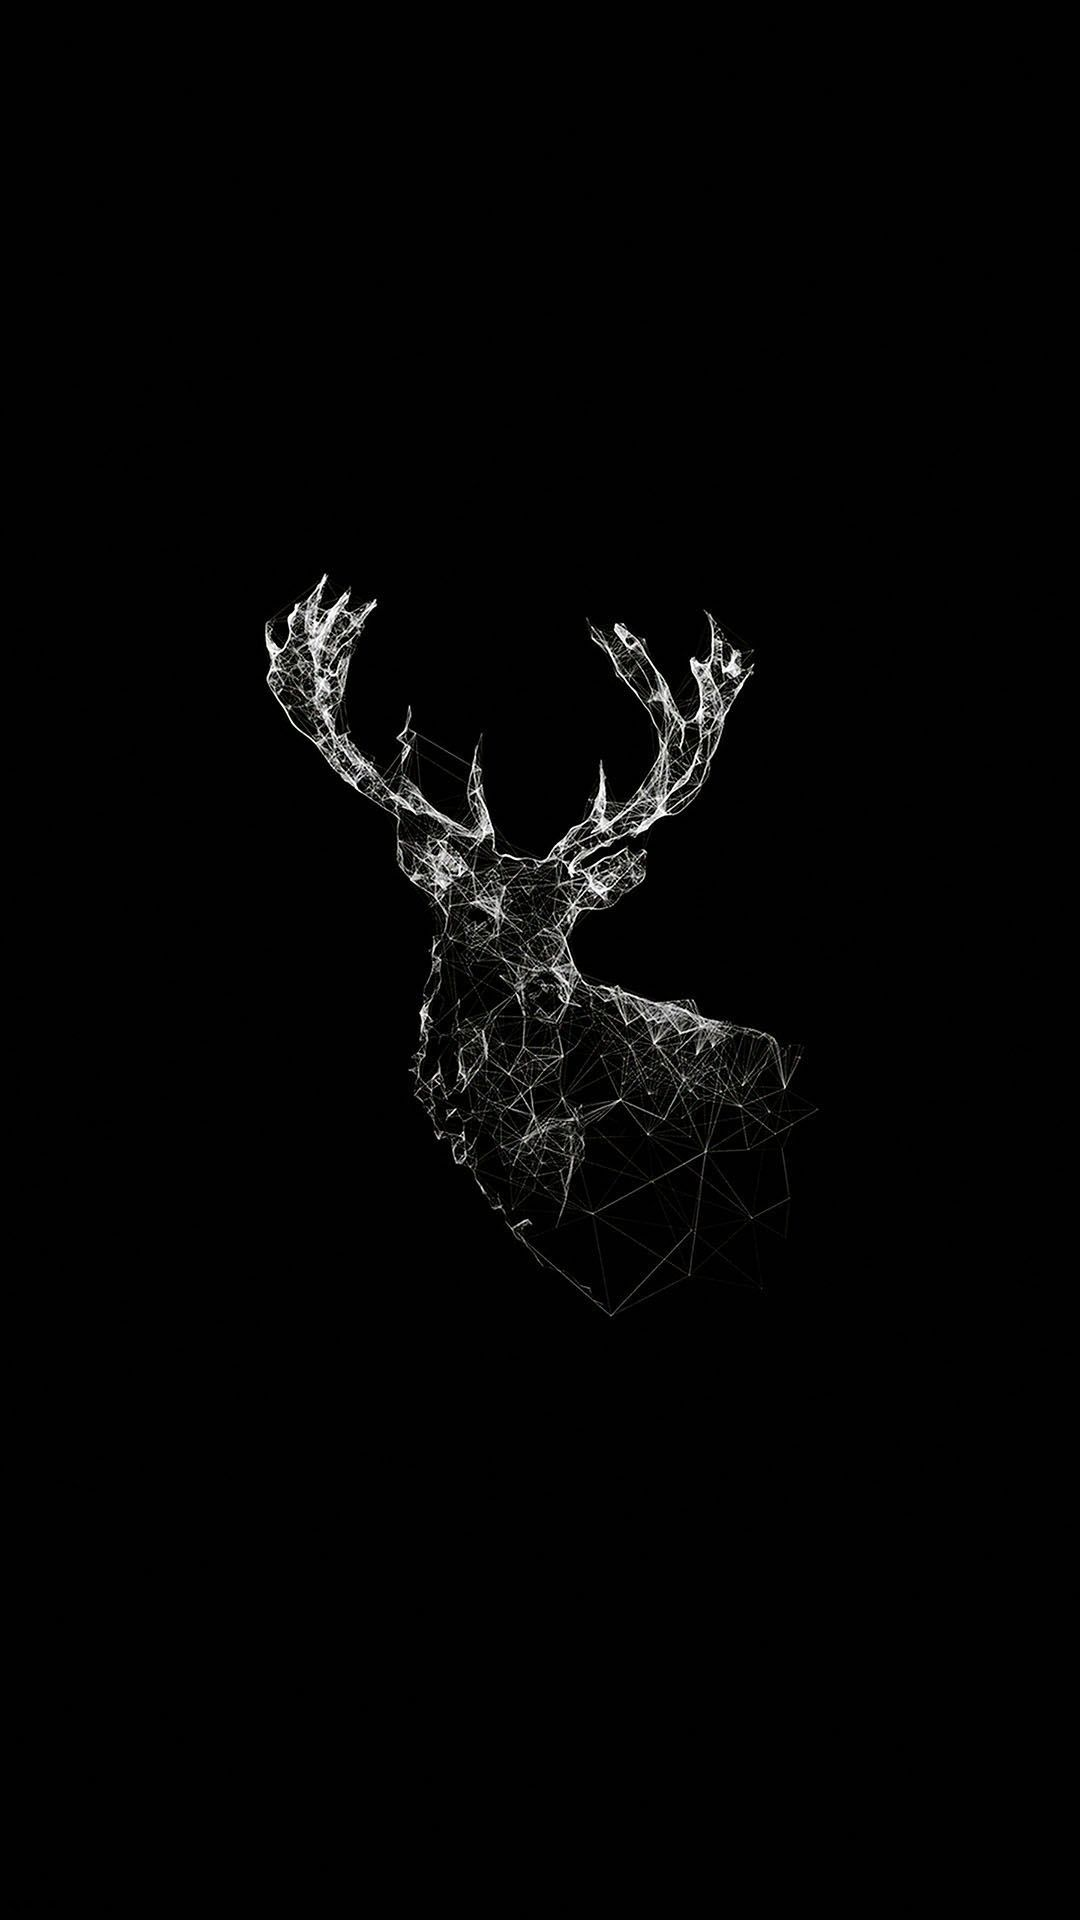 low poly deer illustration android wallpaper